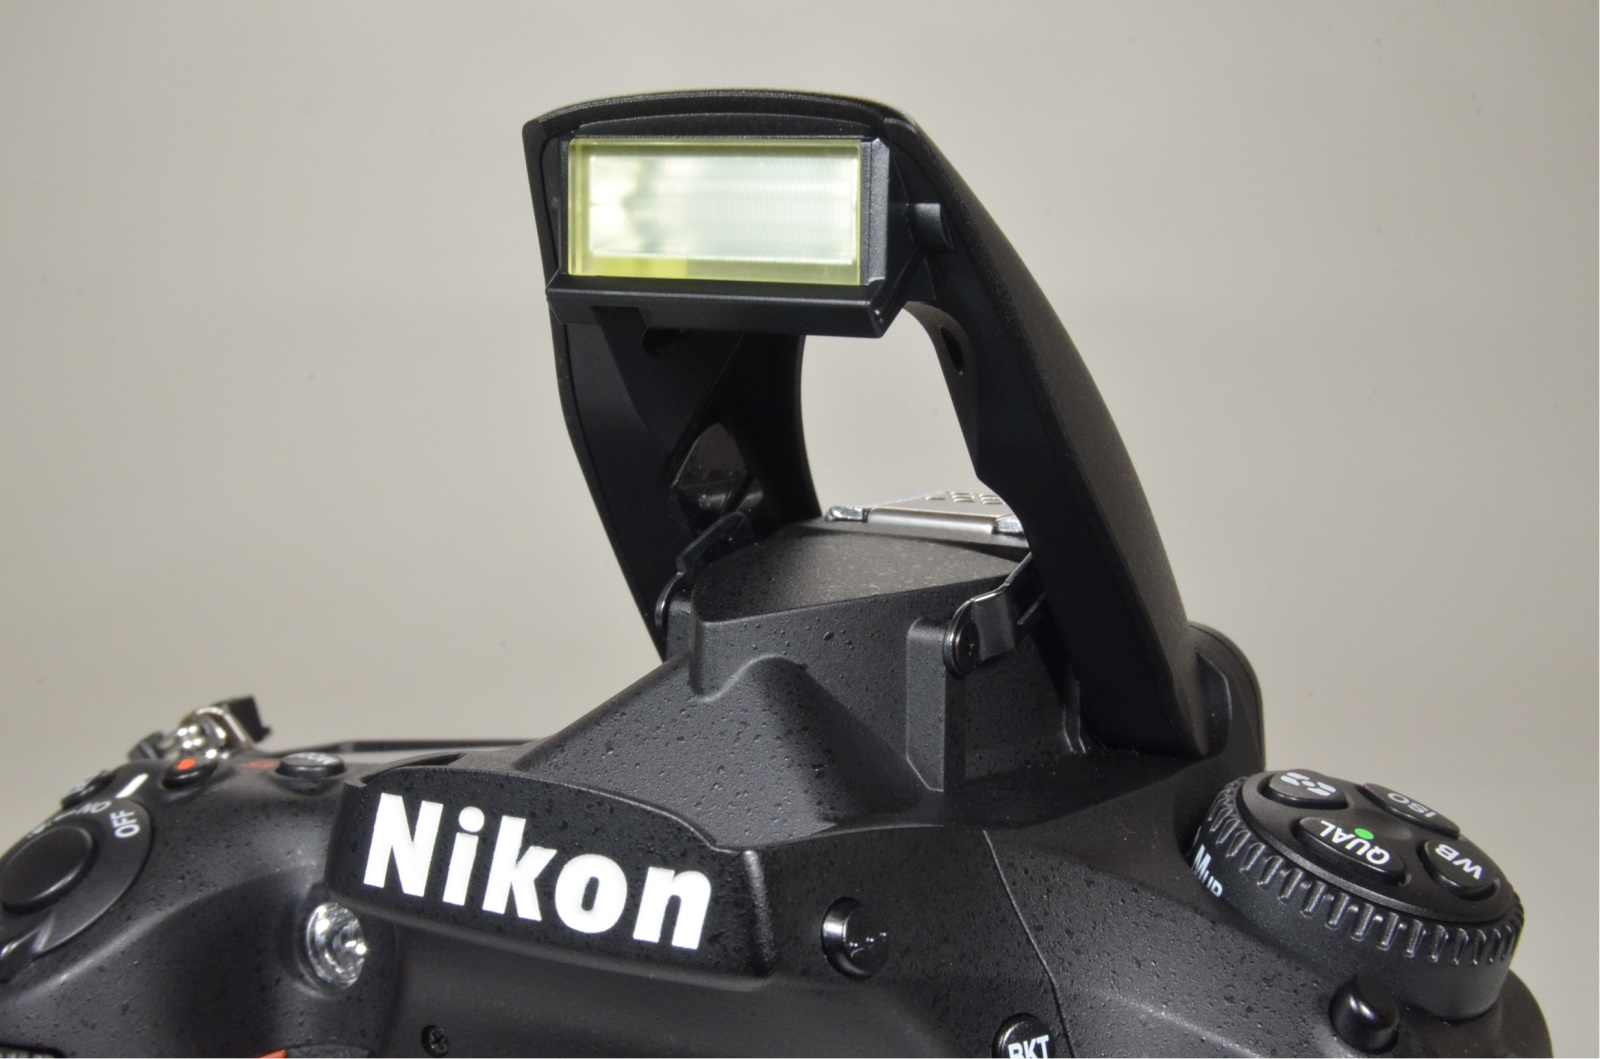 nikon d810 36.3mp digital slr camera body shutter count 8437 from japan